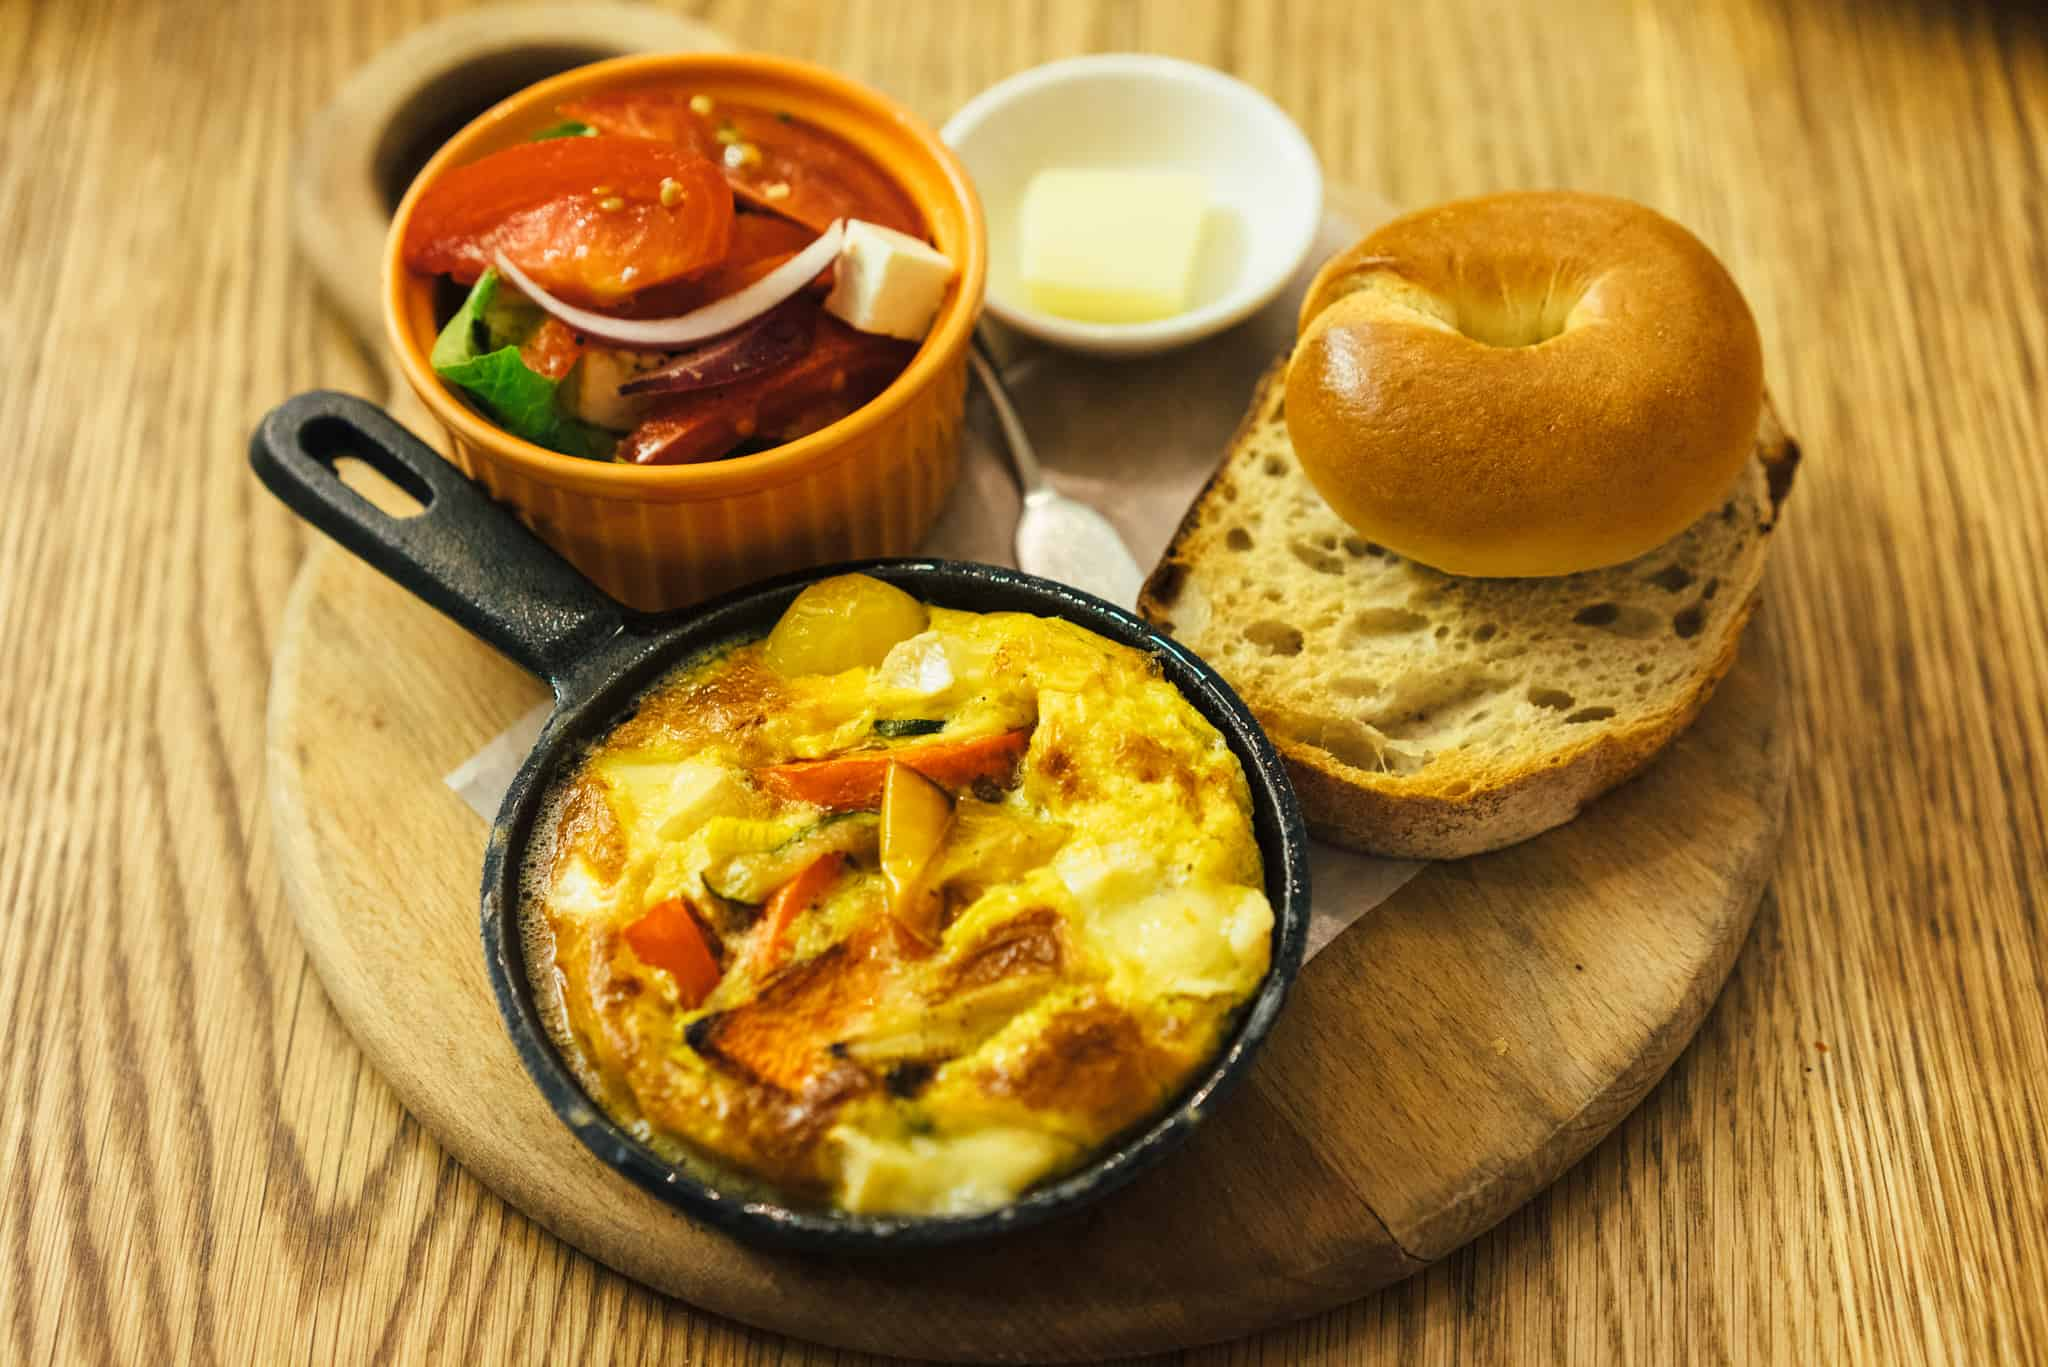 Healthy food options - omelet, toasted bagel, frittata